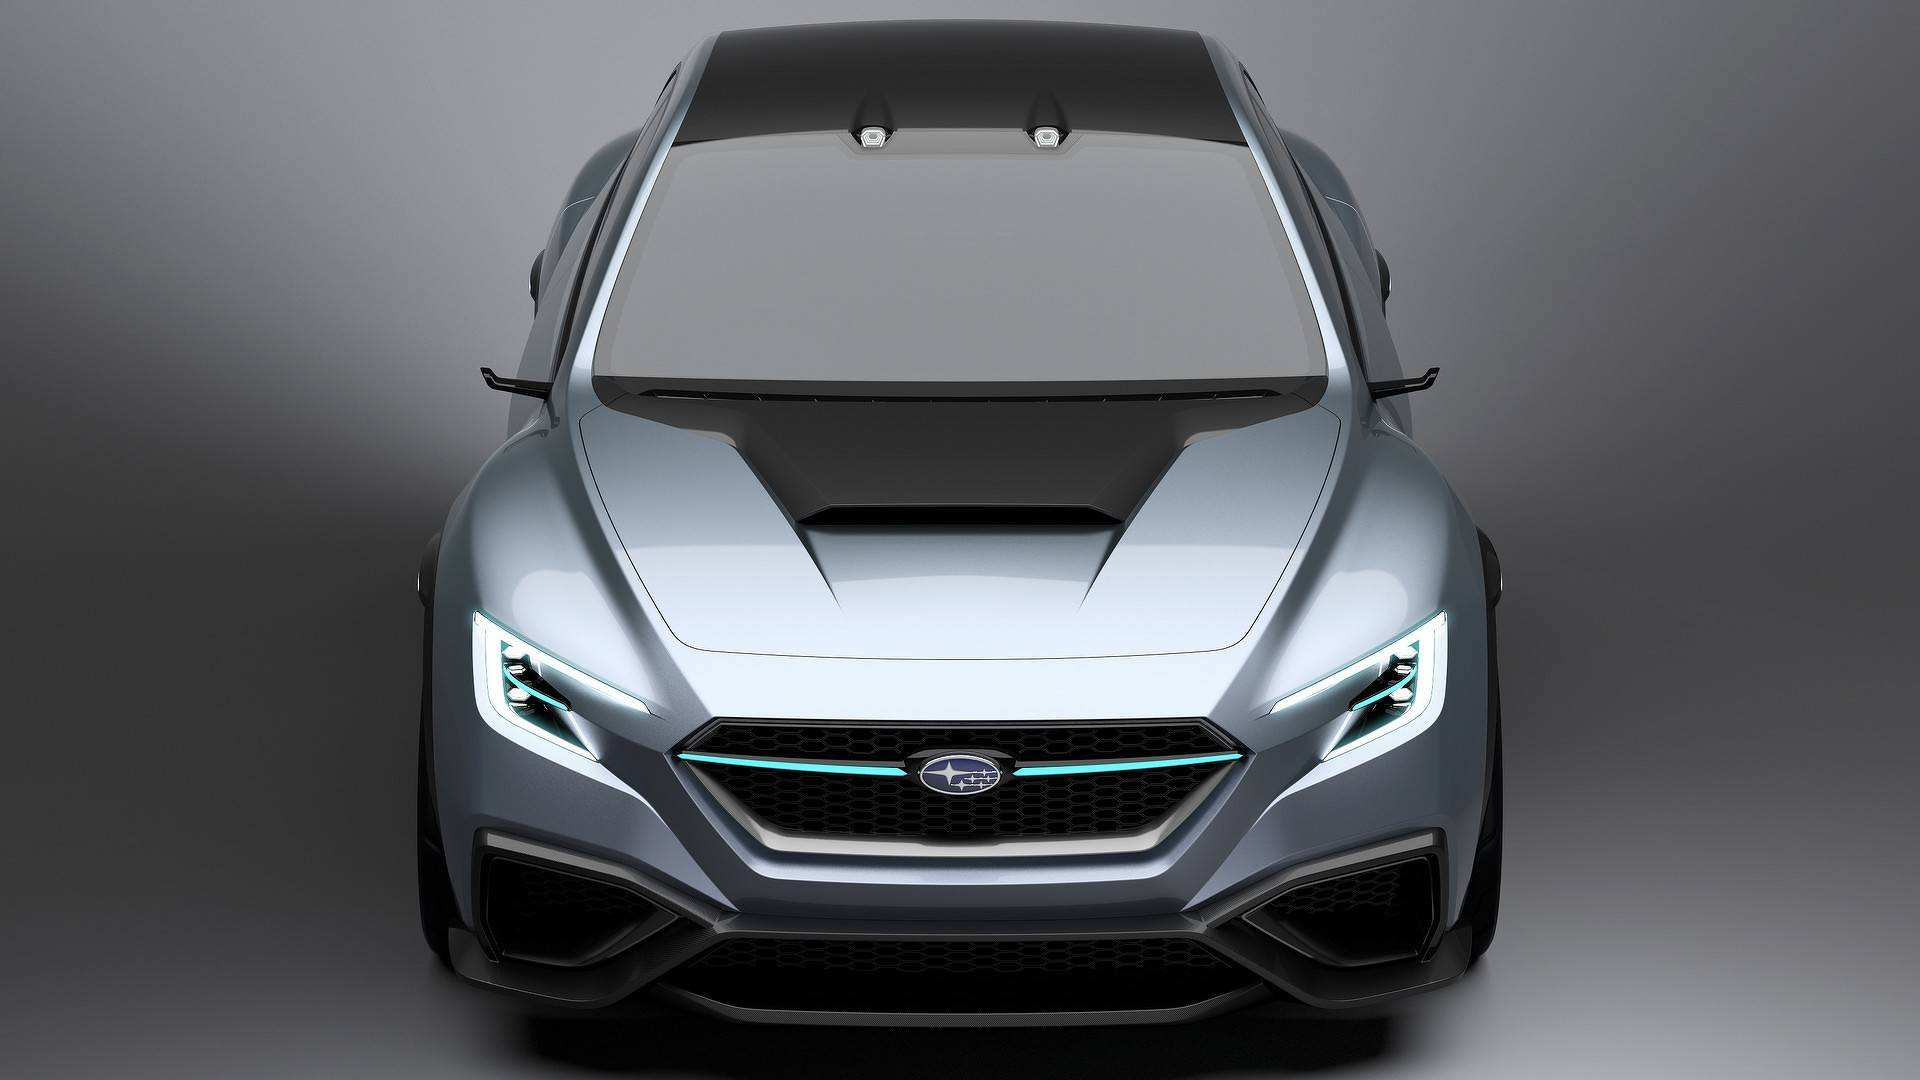 77 Concept of Subaru Sti 2020 Rumors Research New by Subaru Sti 2020 Rumors